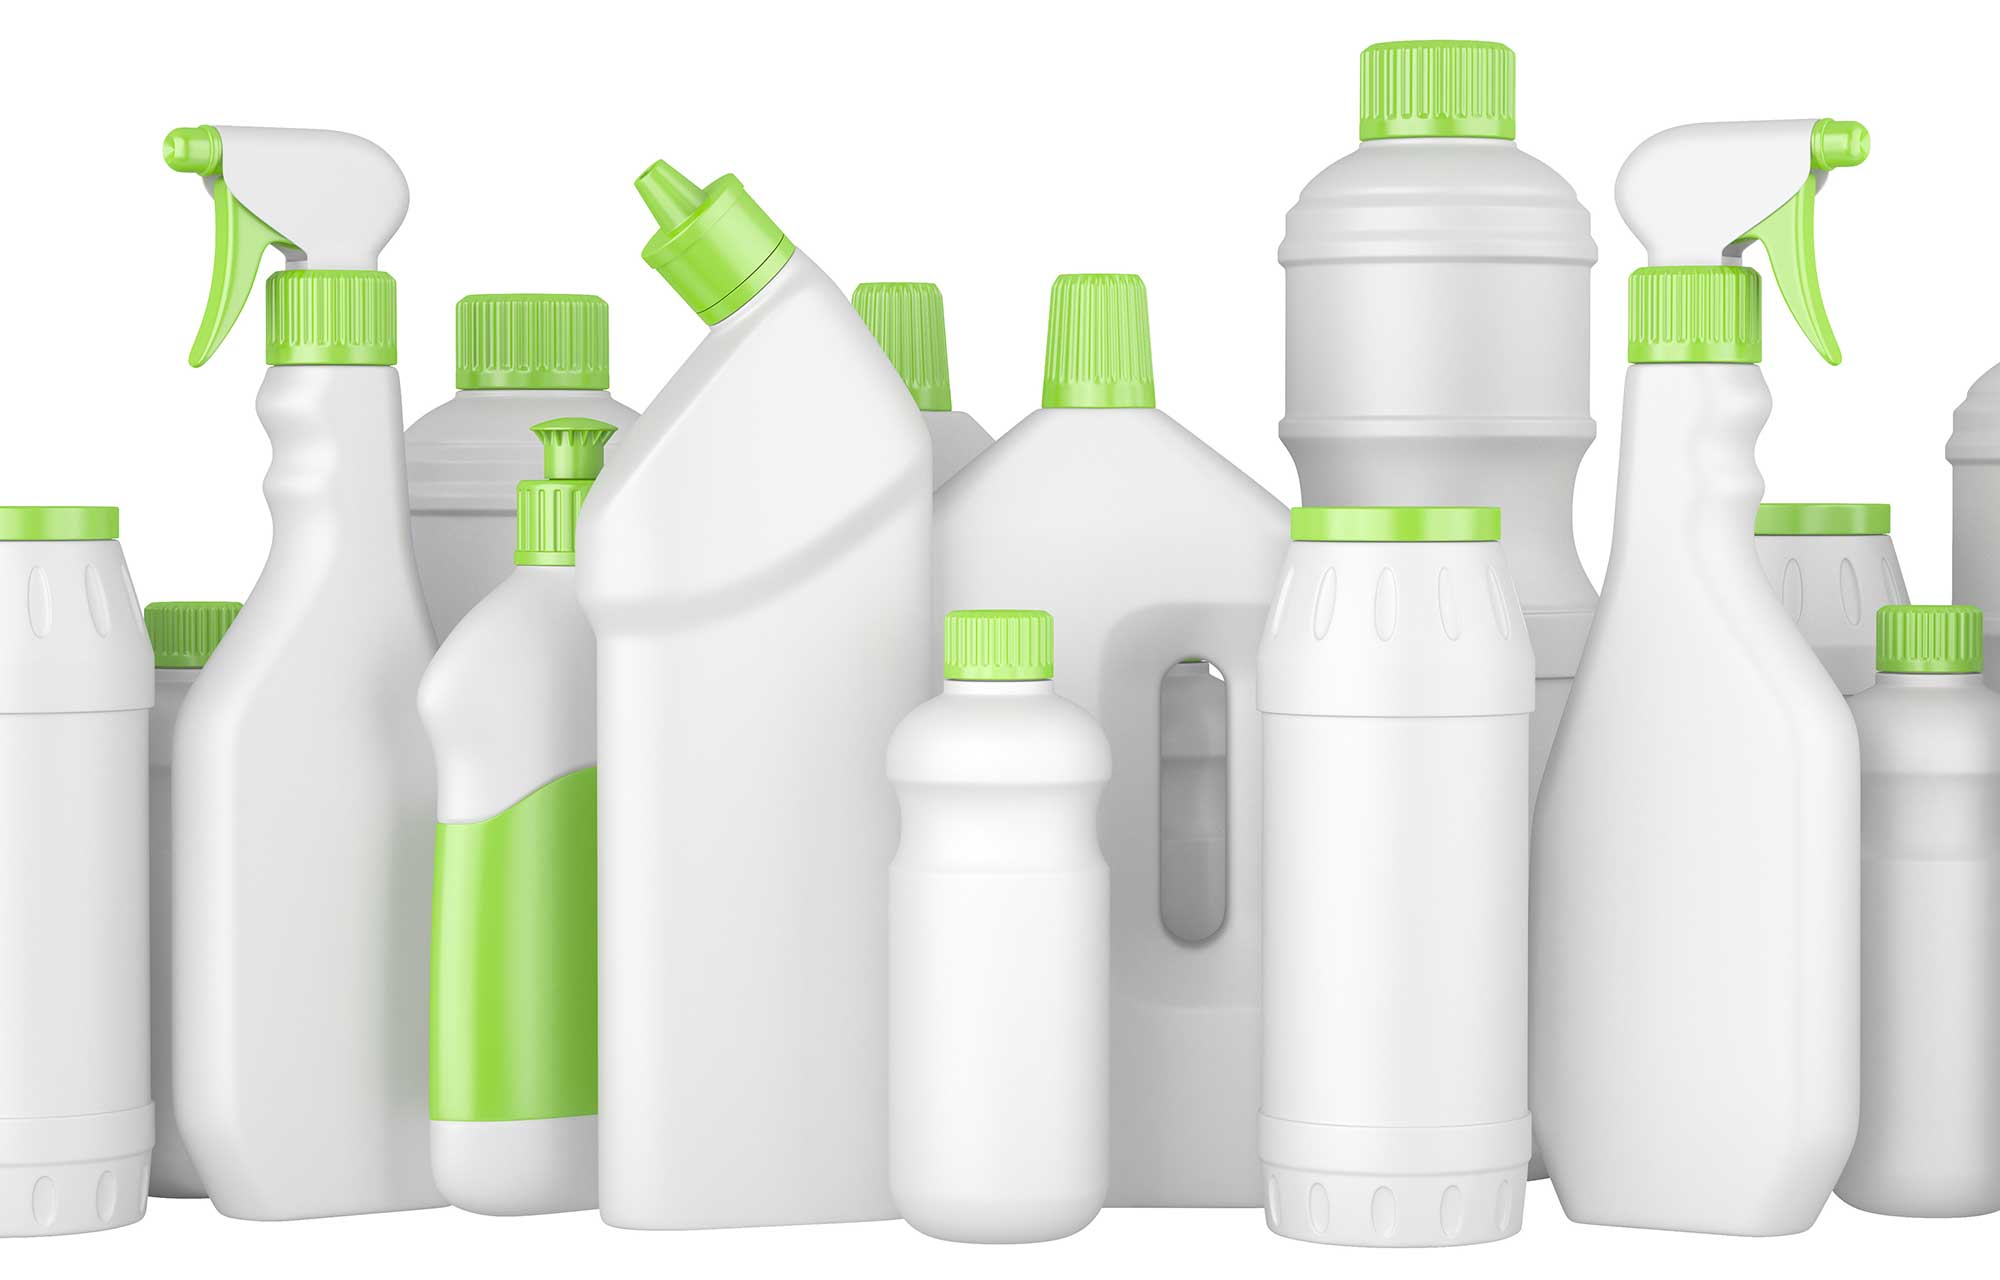 private-label-cleaning-products_all-natural-cleaning-products